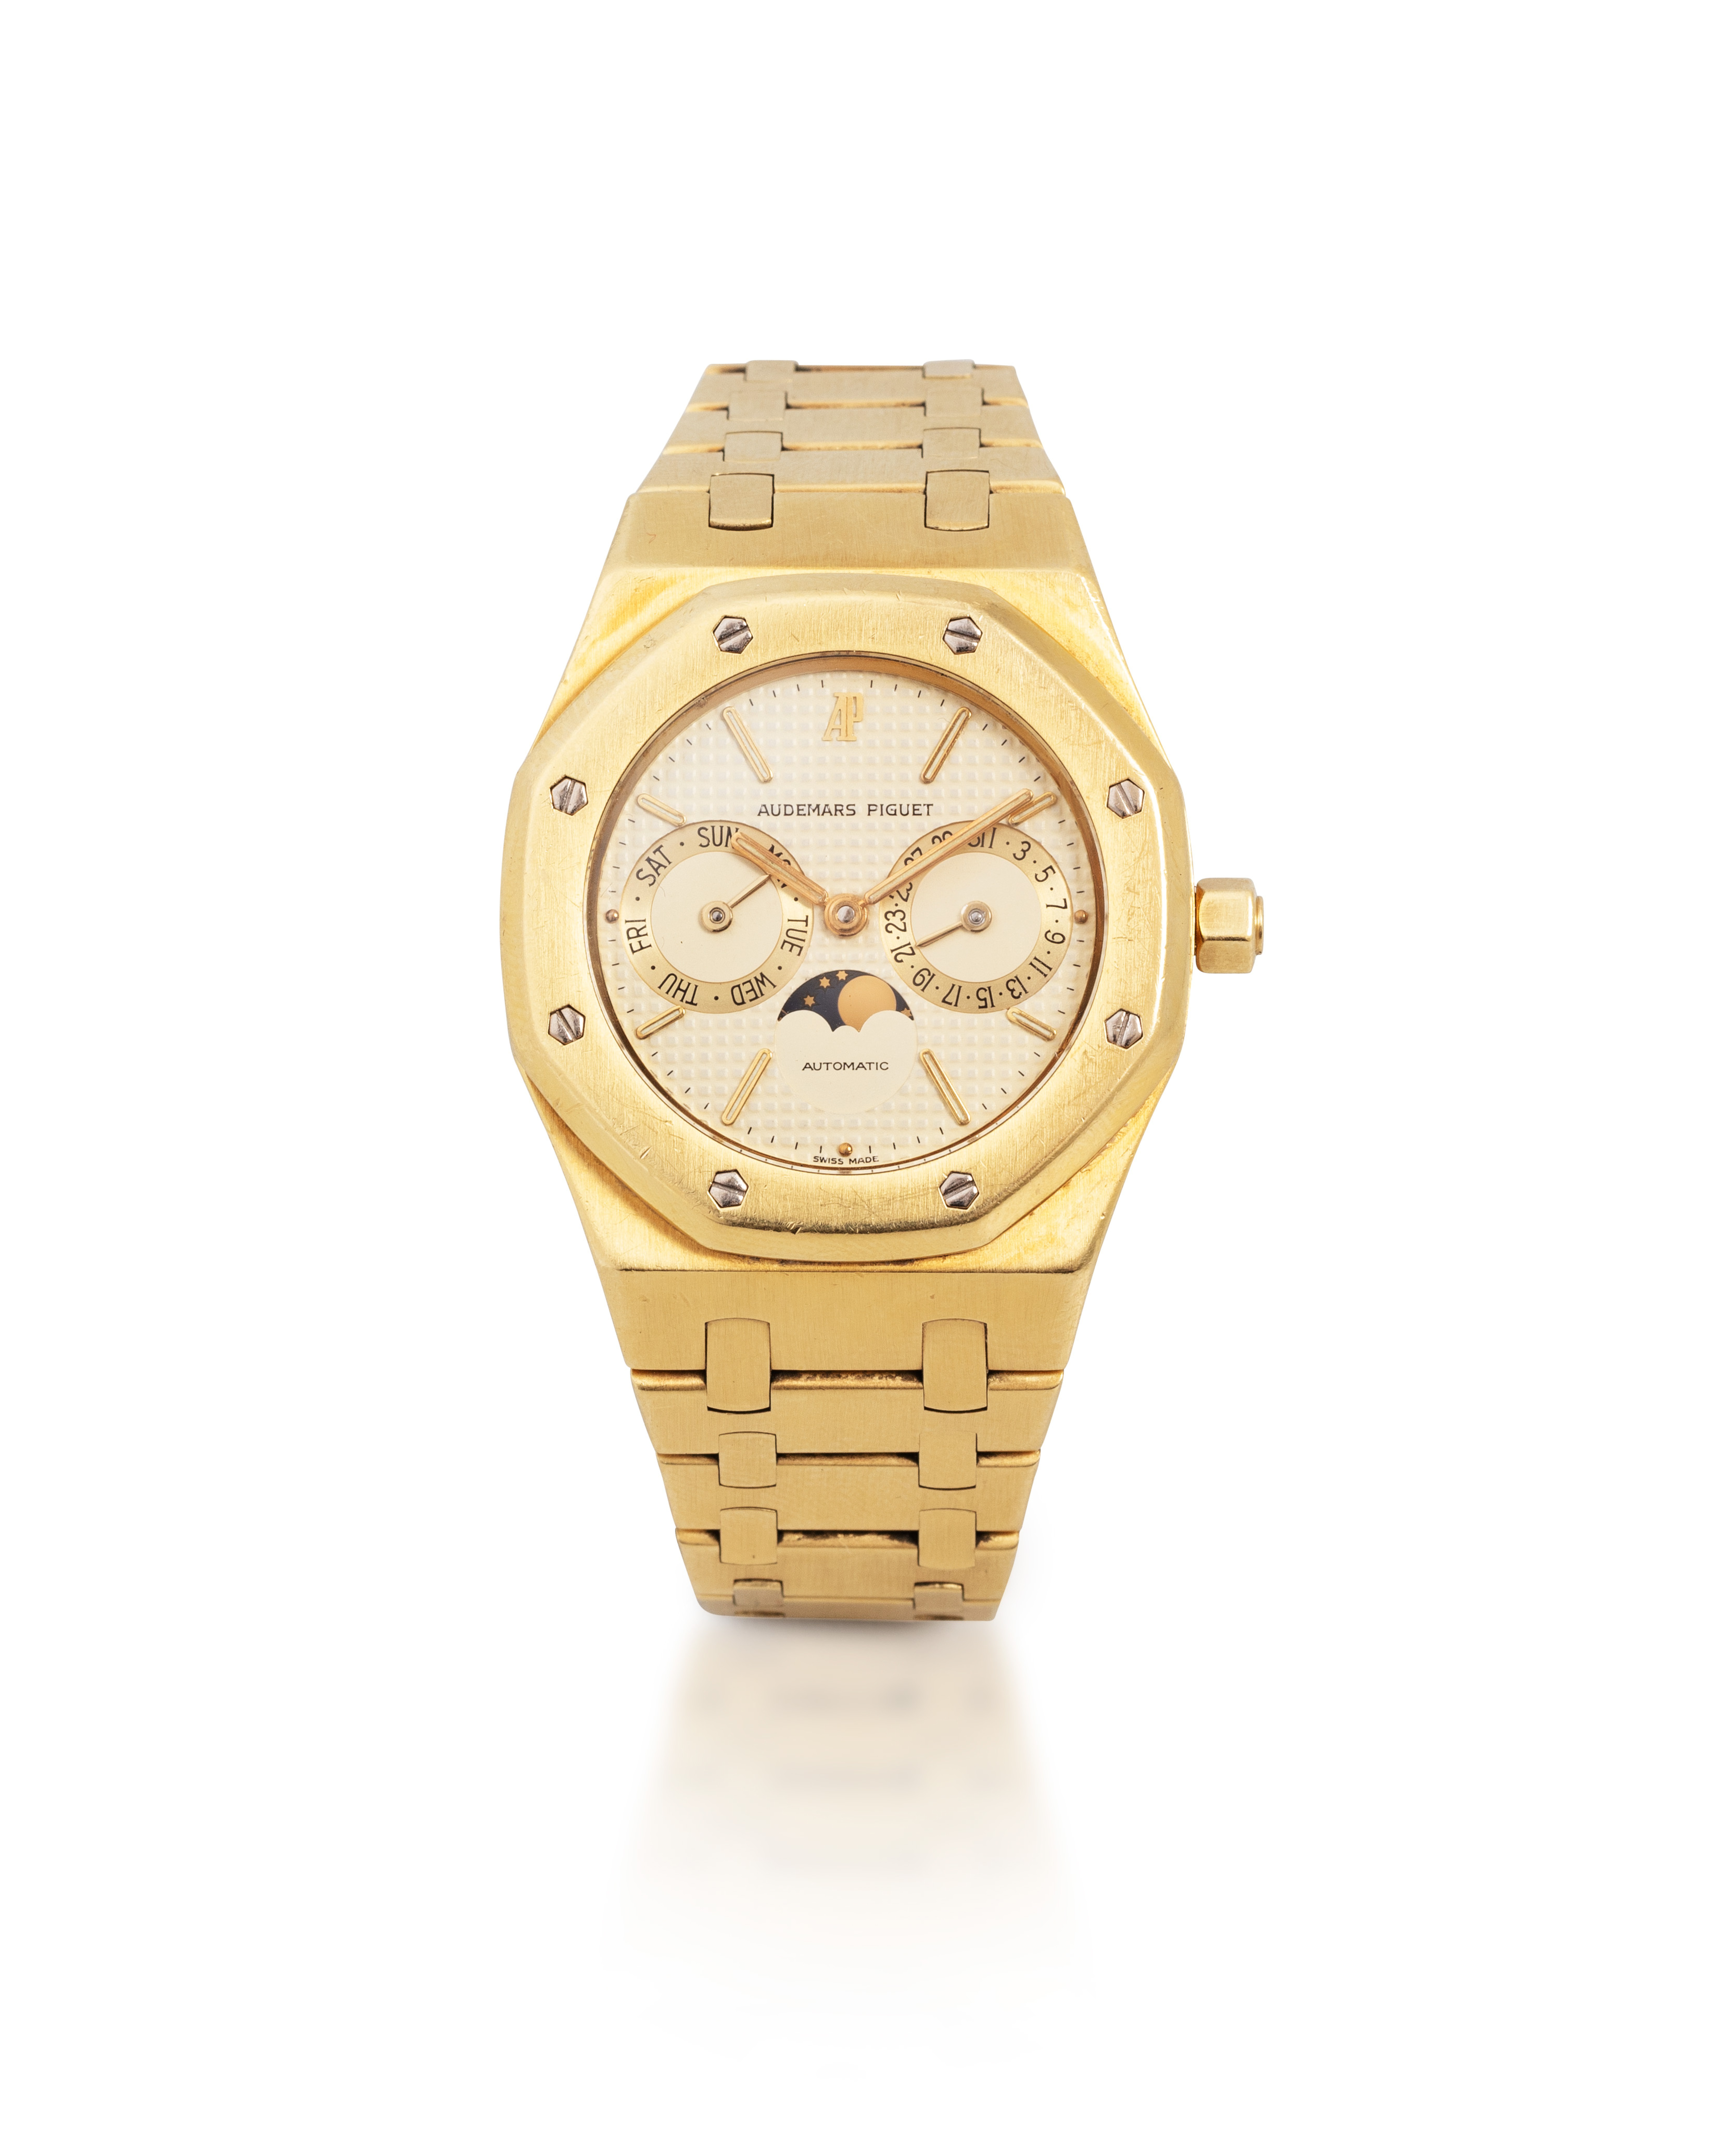 View full screen - View 1 of Lot 2. Royal Oak, Ref. 25594BA    Montre bracelet en or jaune avec date, jour et phases de lune |  Yellow gold wristwatch with day, date, moon phases and bracelet    Vers 1995 |  Circa 1995.